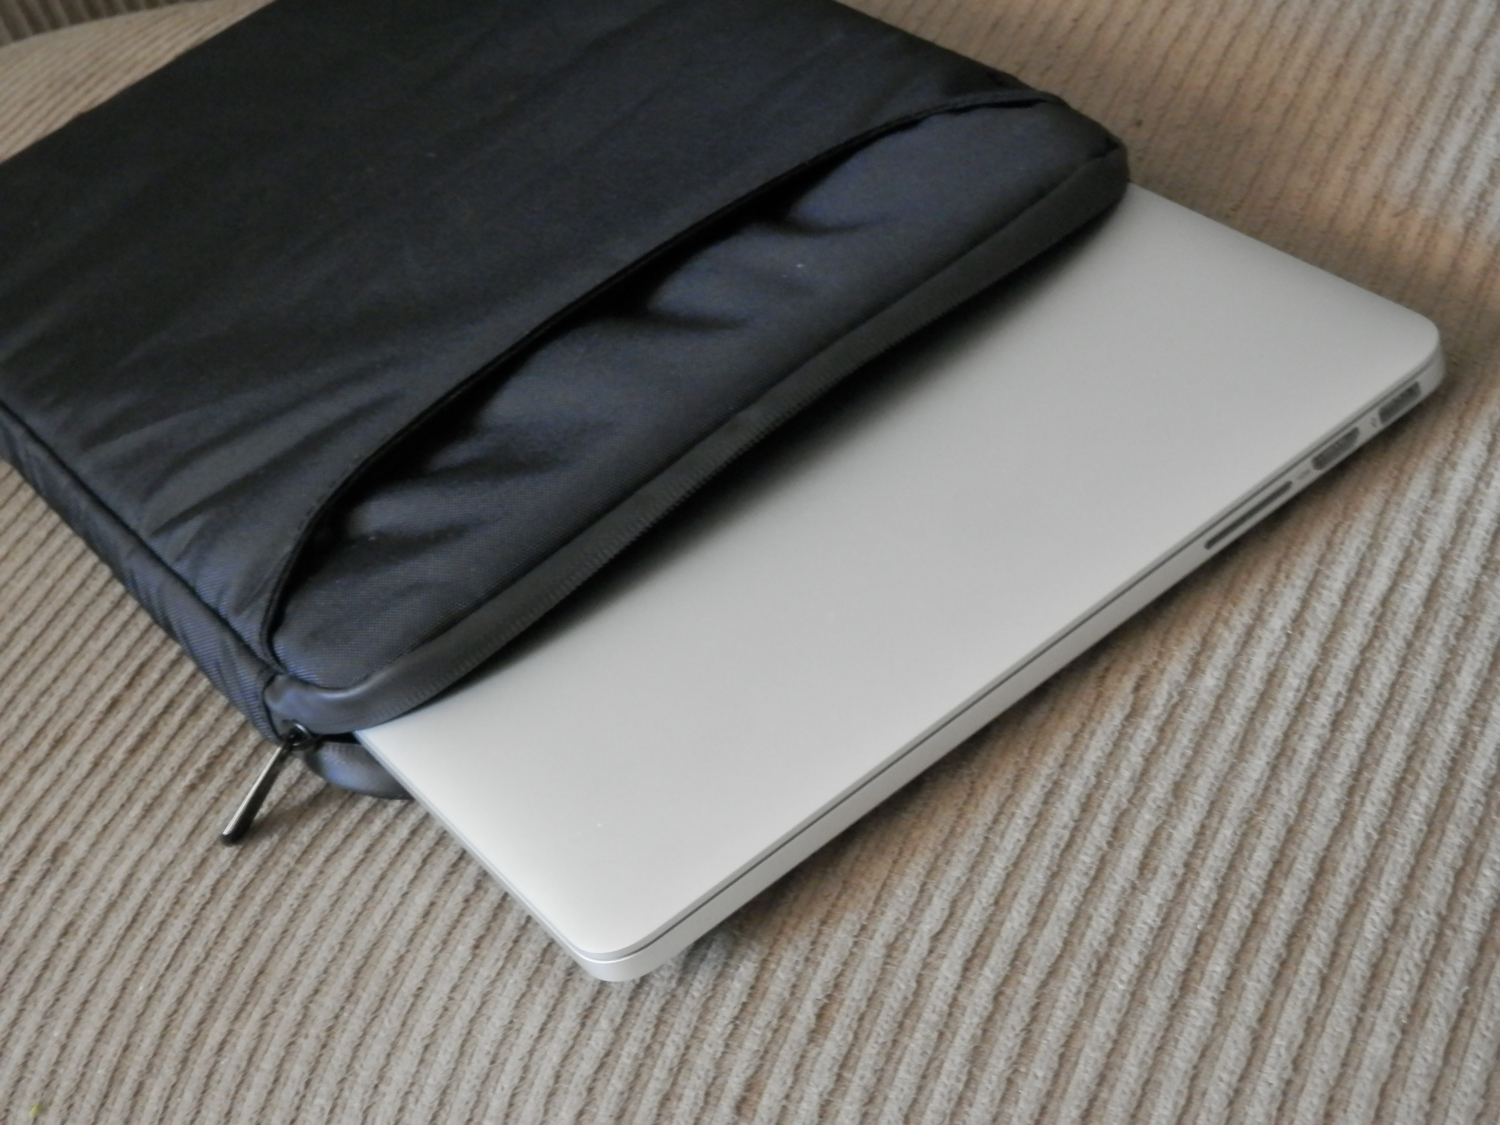 incipio-asher-macbook-pro-sleeve-containing-macbook-pro